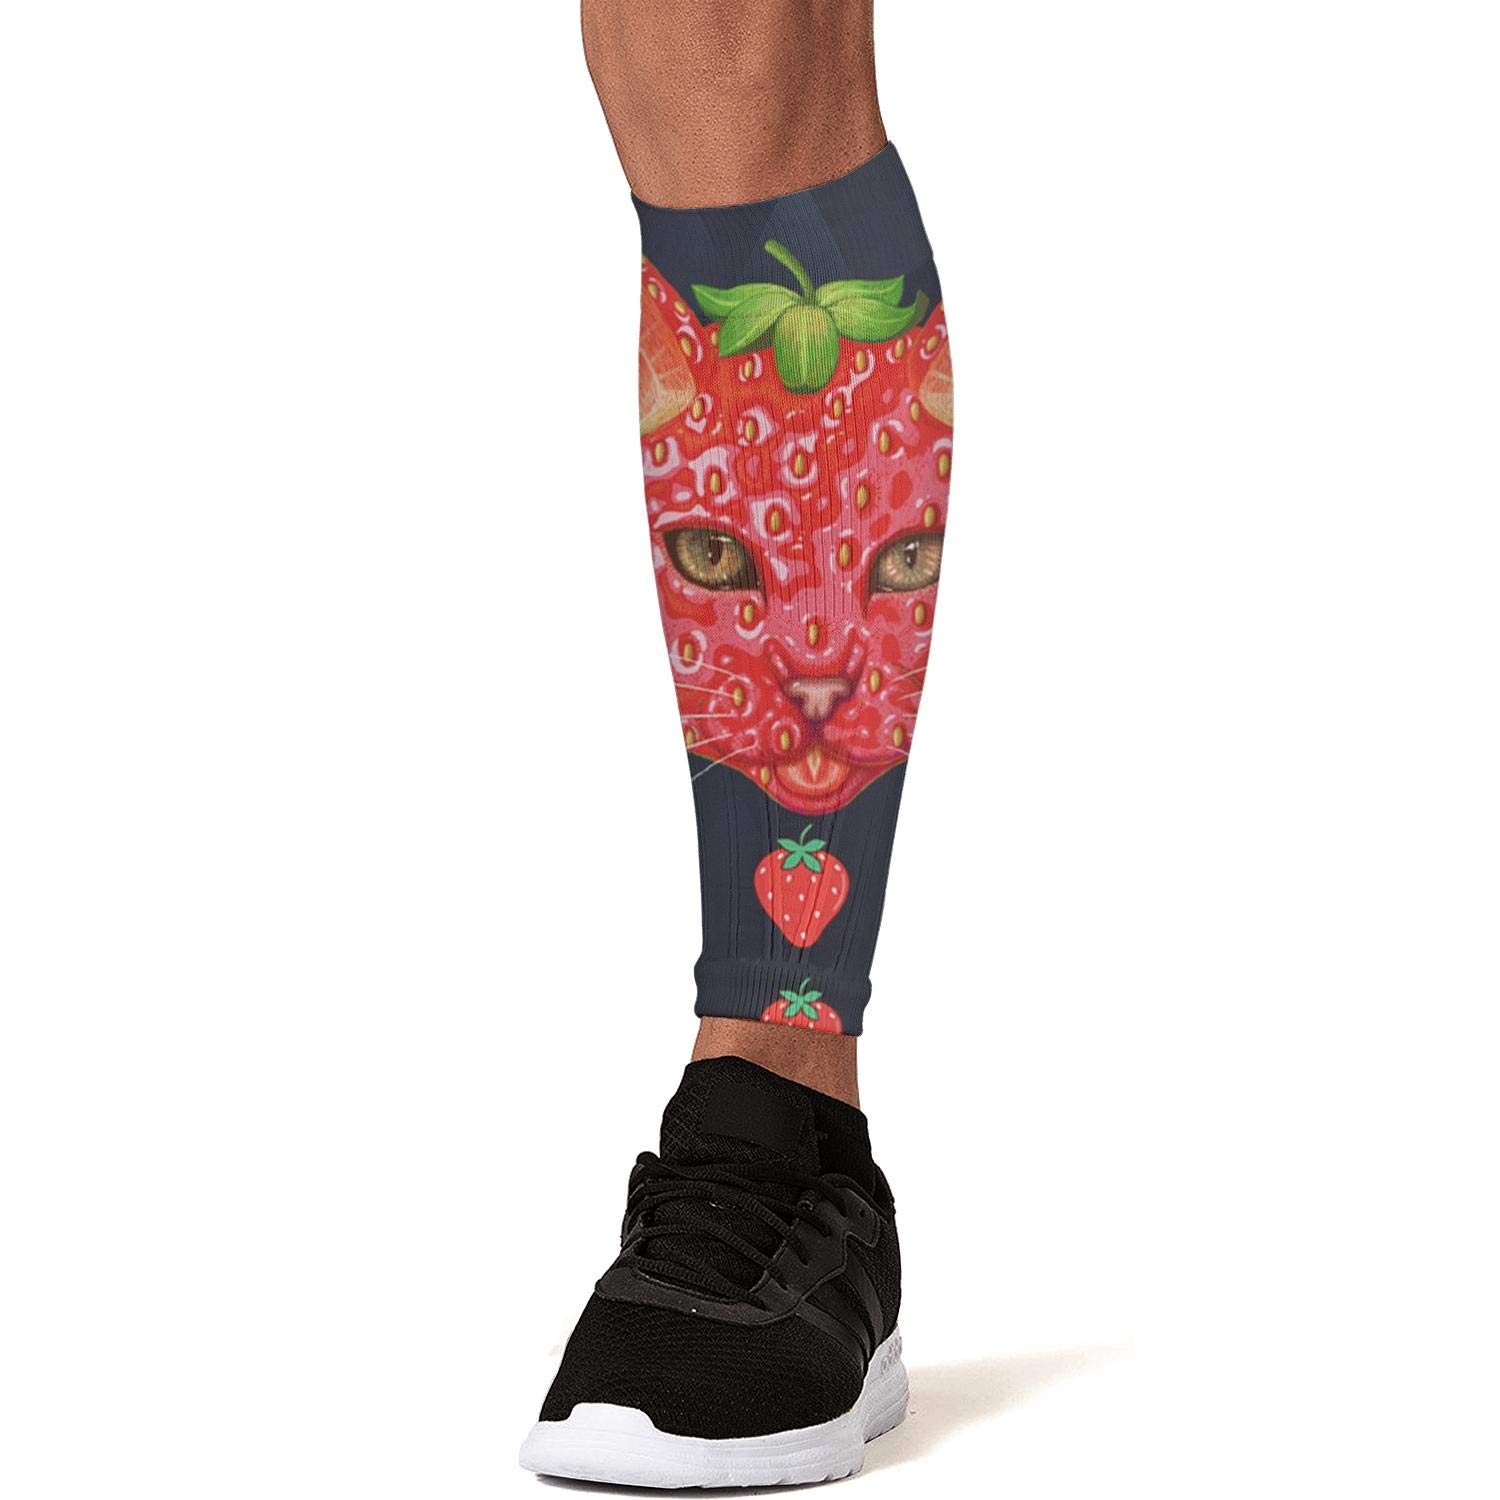 Smilelolly strawberry cat Calf Compression Sleeves Helps Pain Relief Leg Sleeves for Men Women